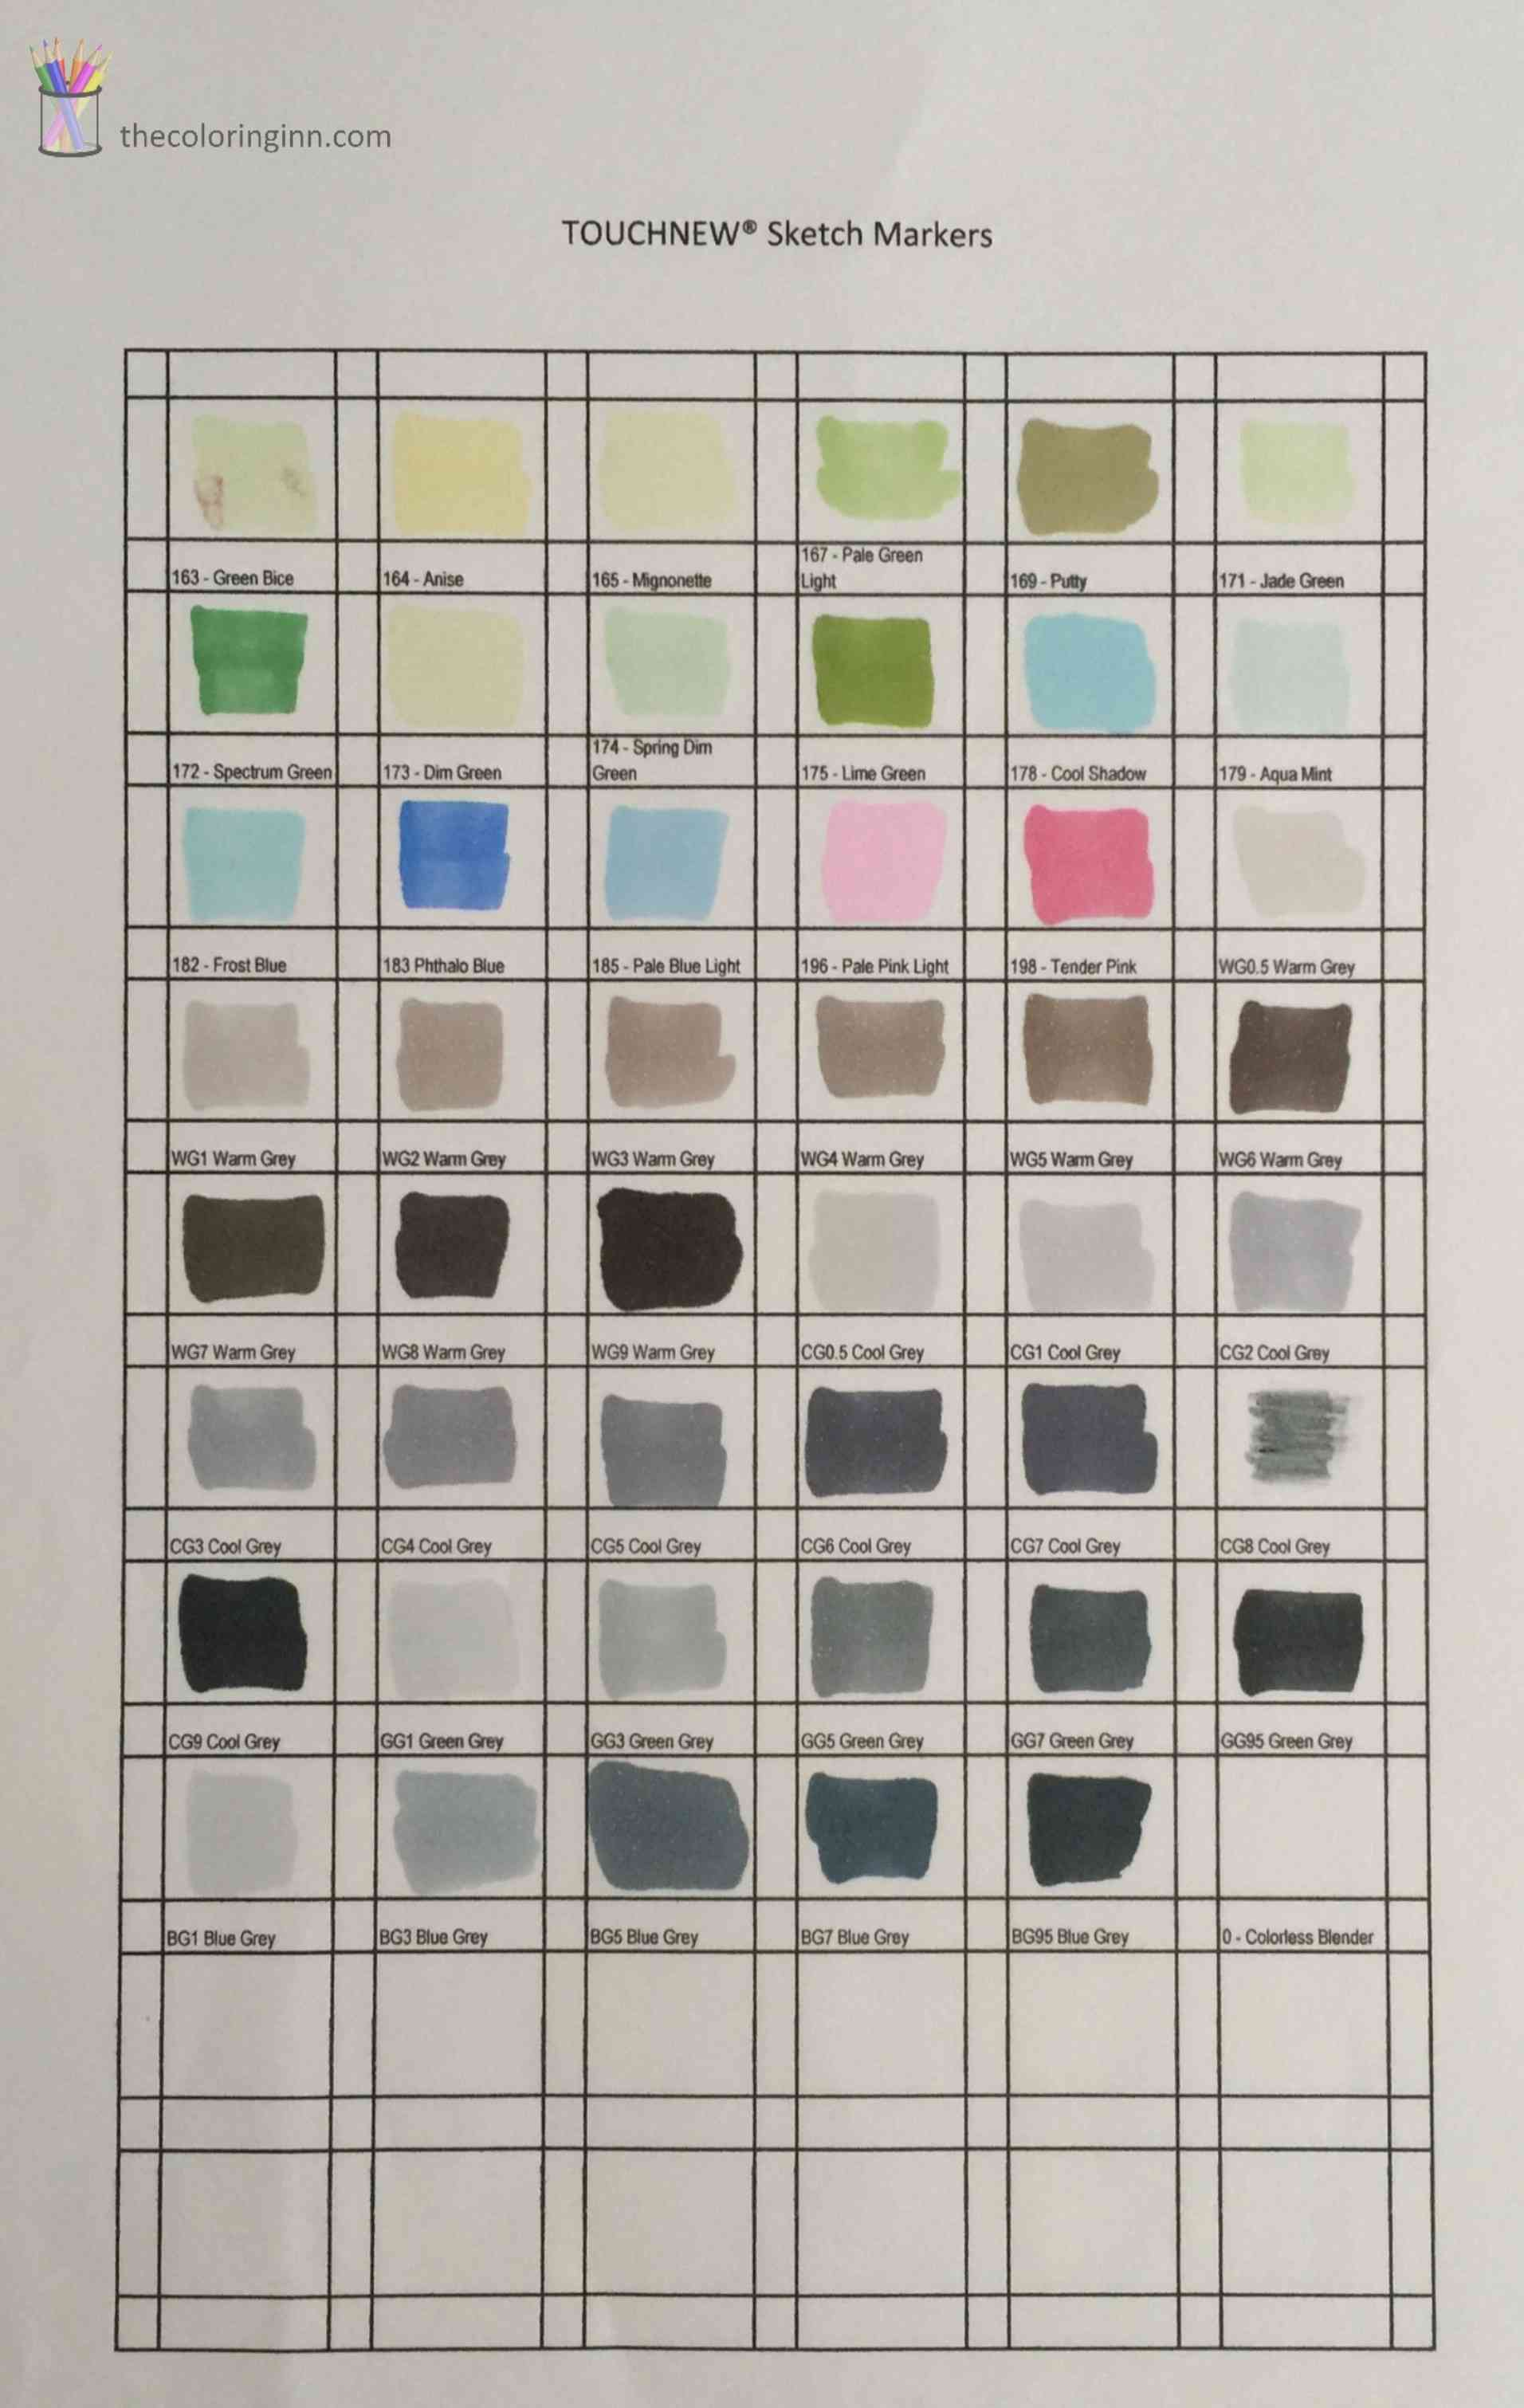 Color Chart For Touchnew 174 Sketch Markers The Coloring Inn